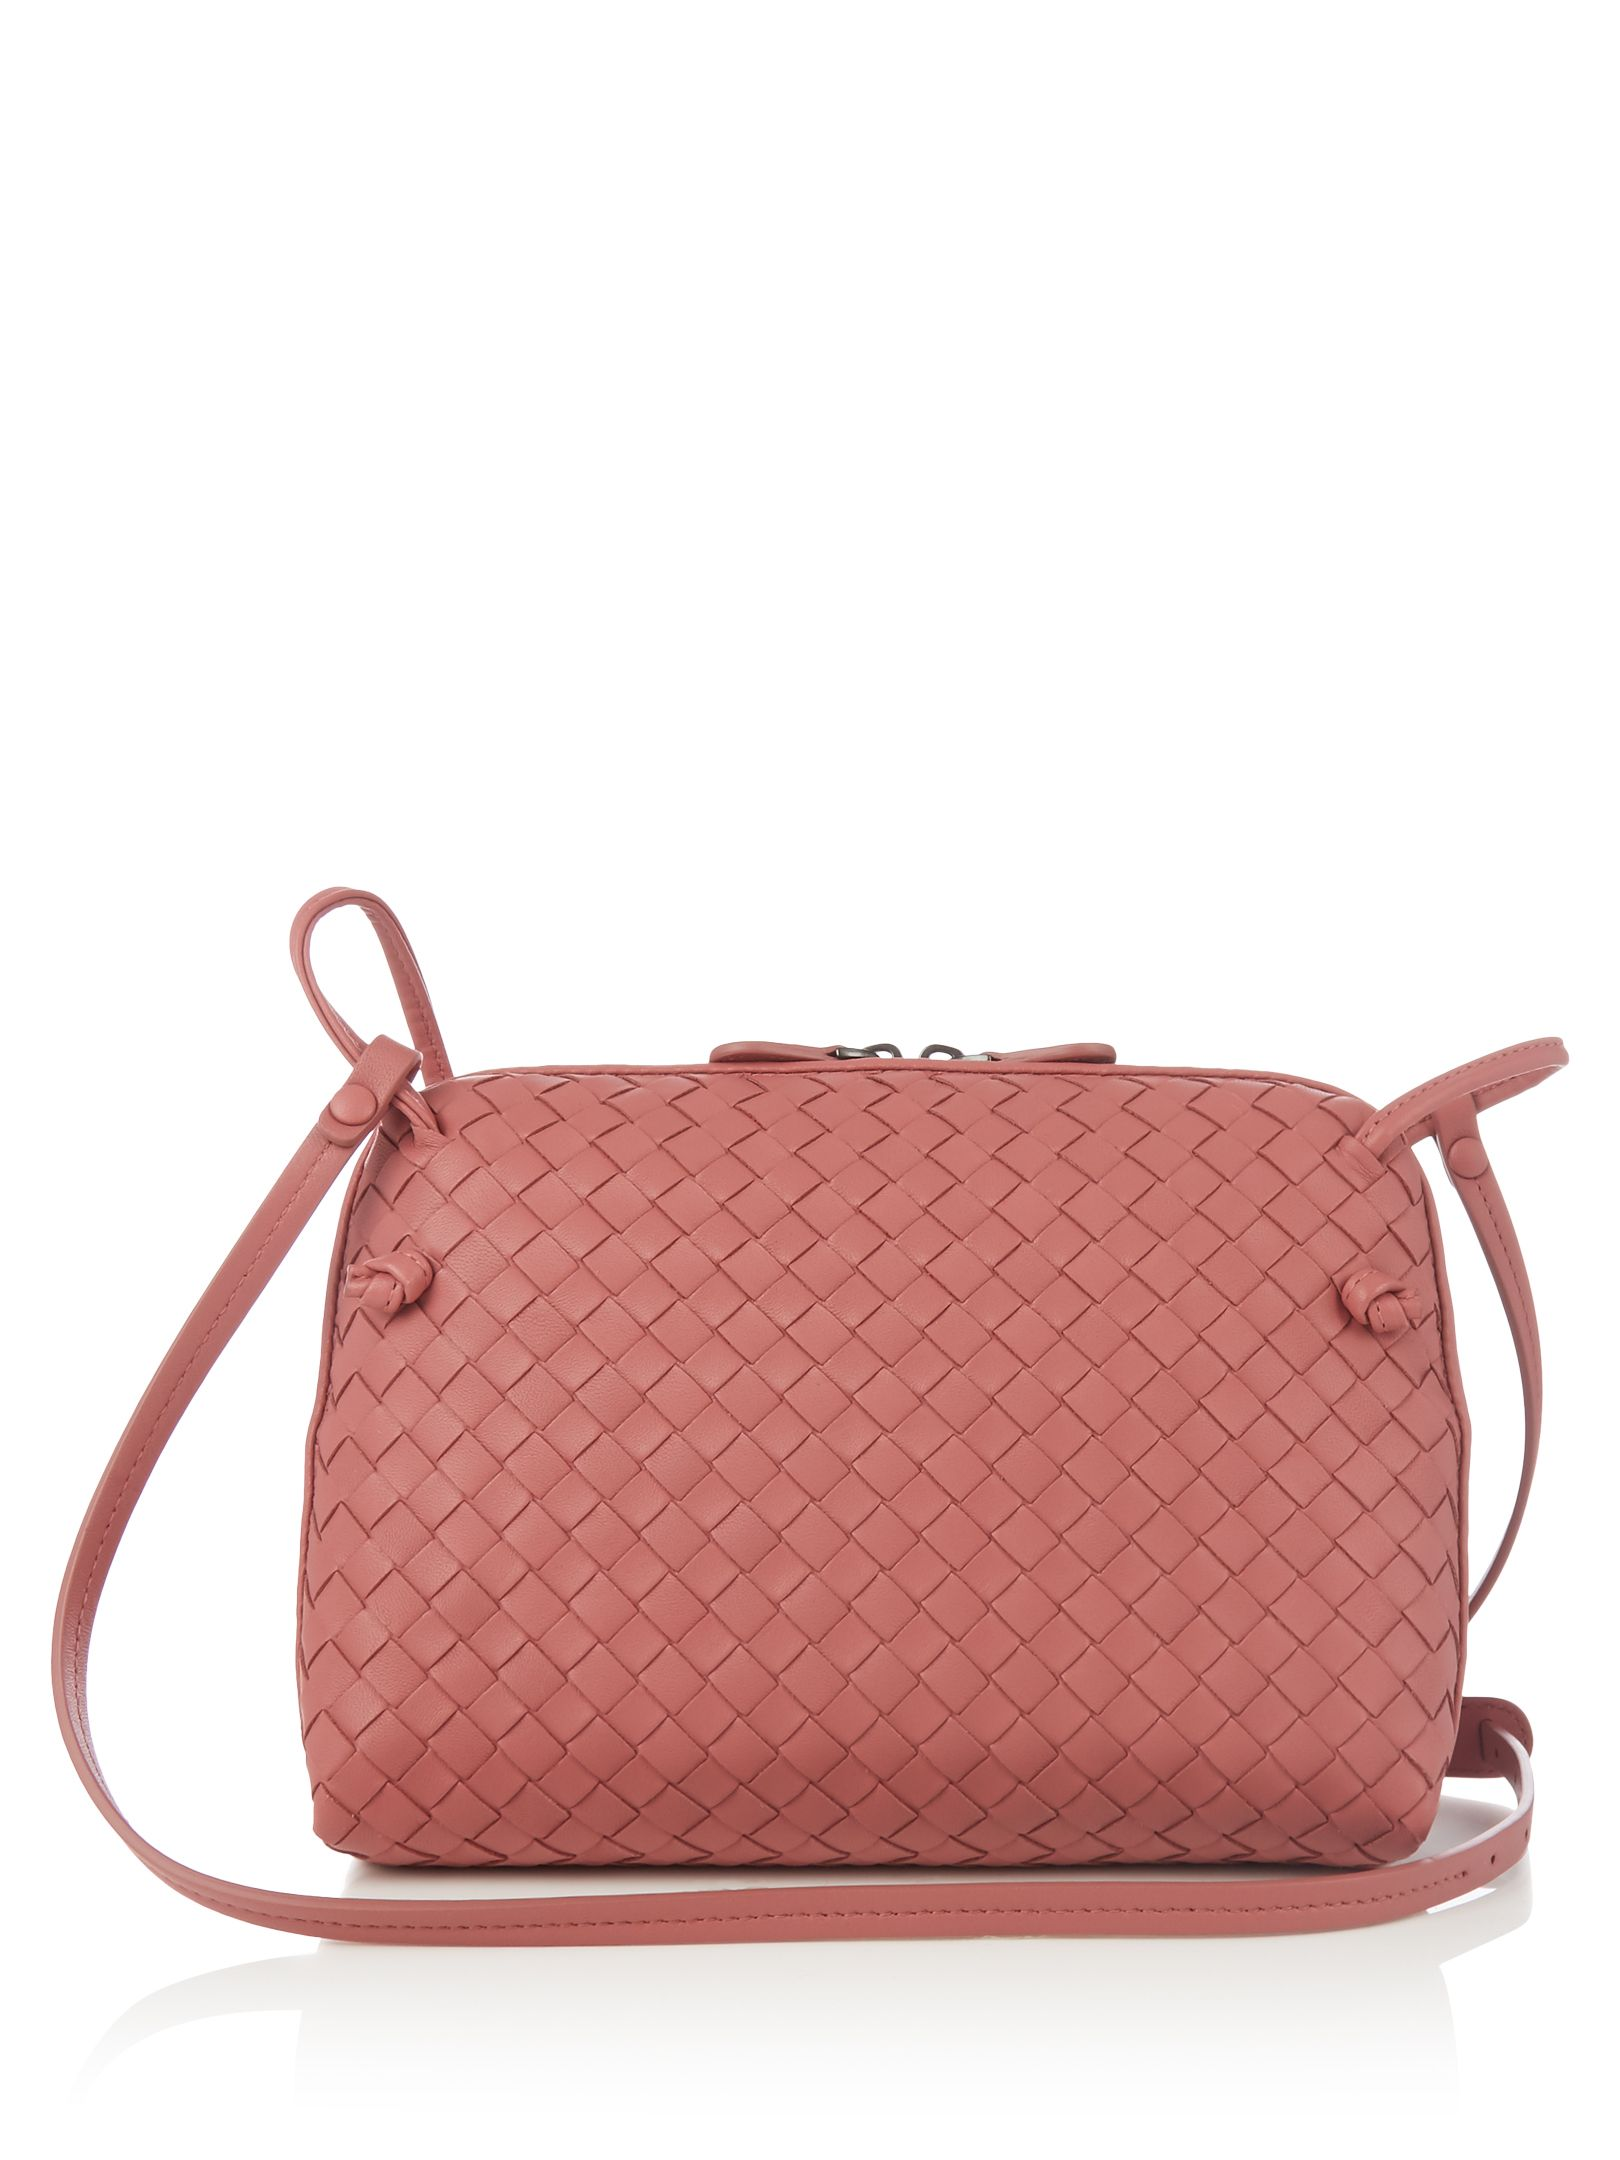 Nodini Intrecciato cross-body bag Bottega Veneta 1Y8trM